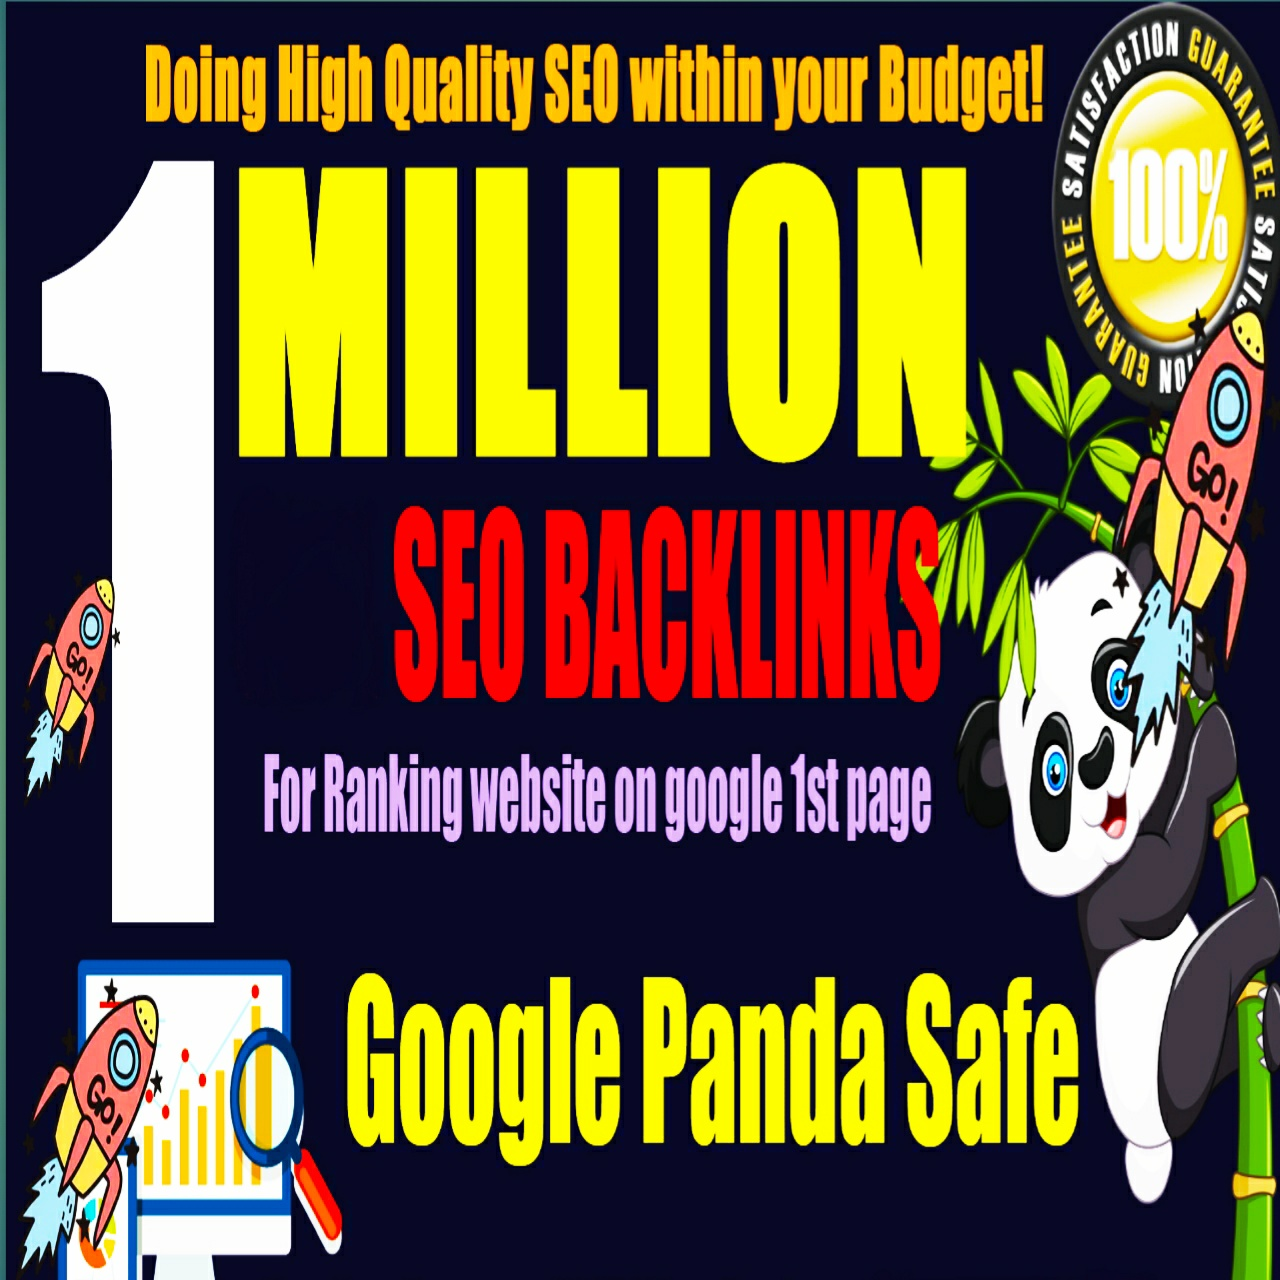 I will do HQ 1 million backlinks for your urls and keywords